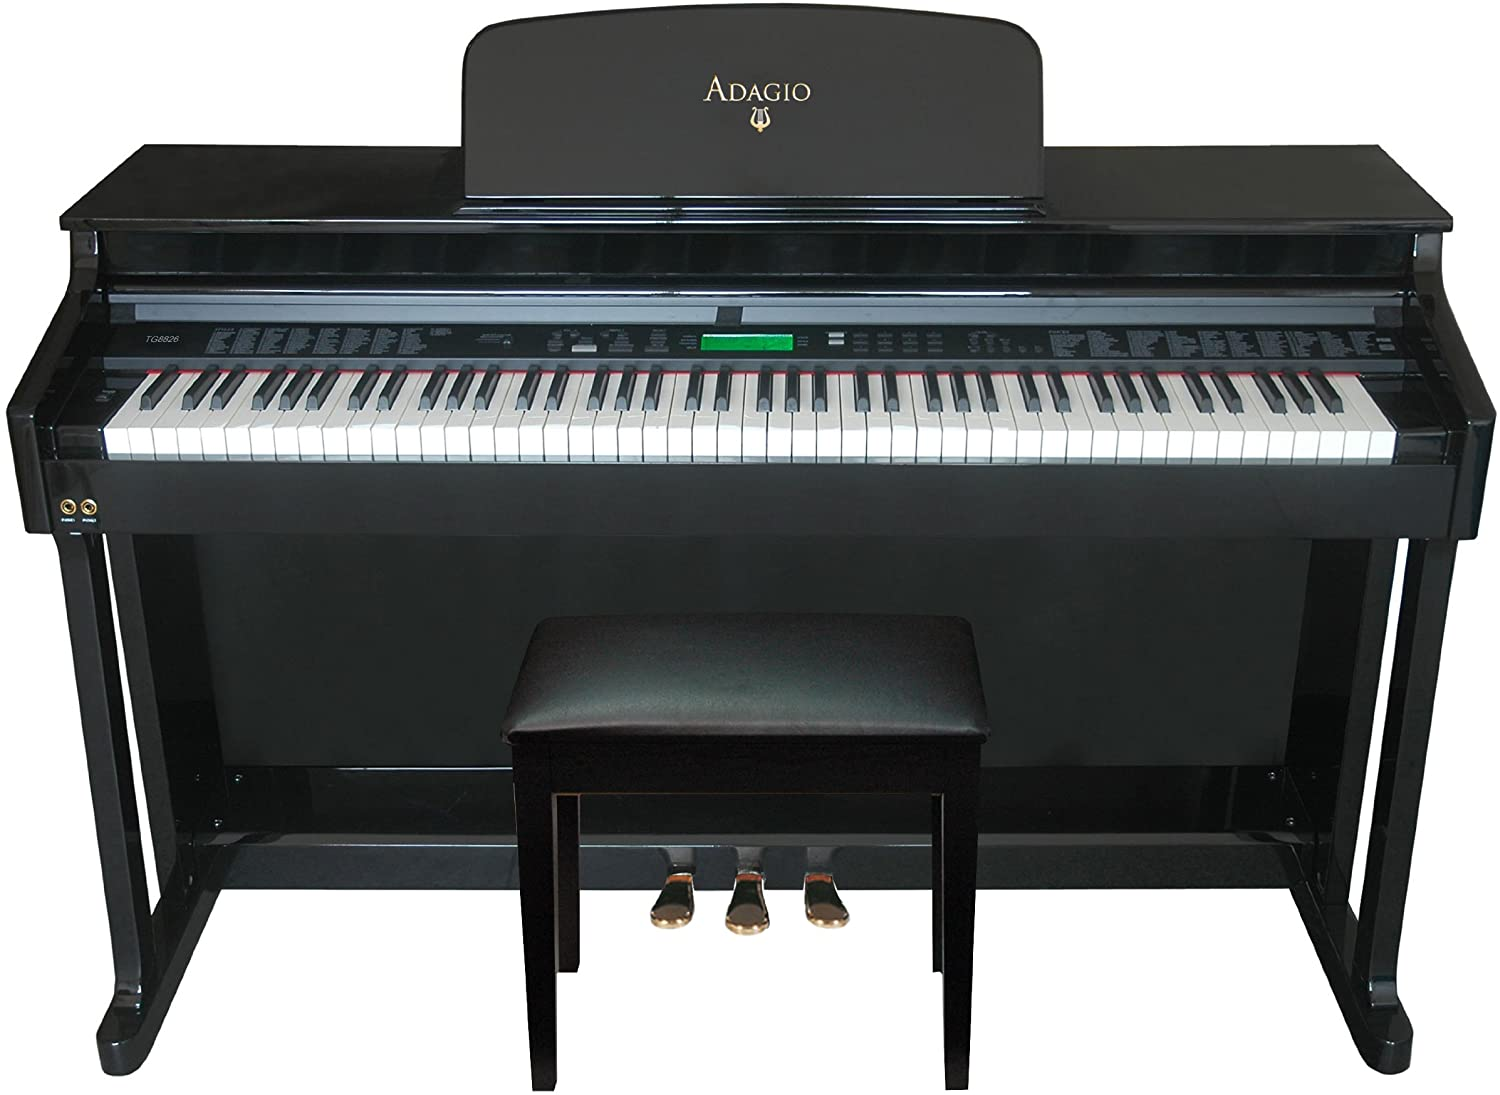 Adagio KDP-8826PE Upright 88